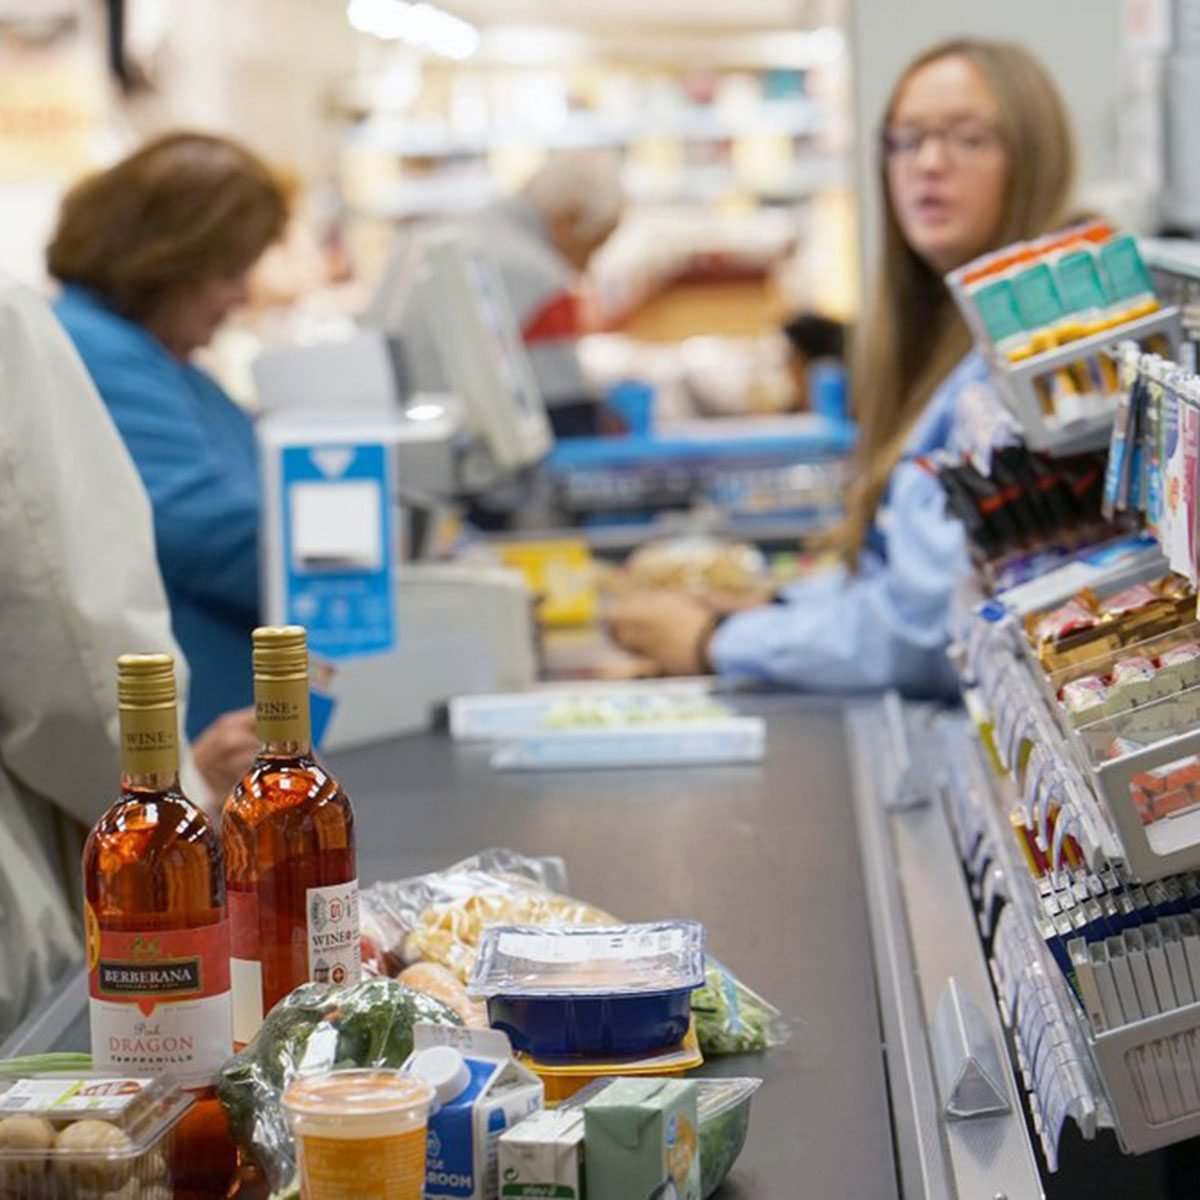 11 Things Store Cashiers Secretly Wish You Would Stop Doing